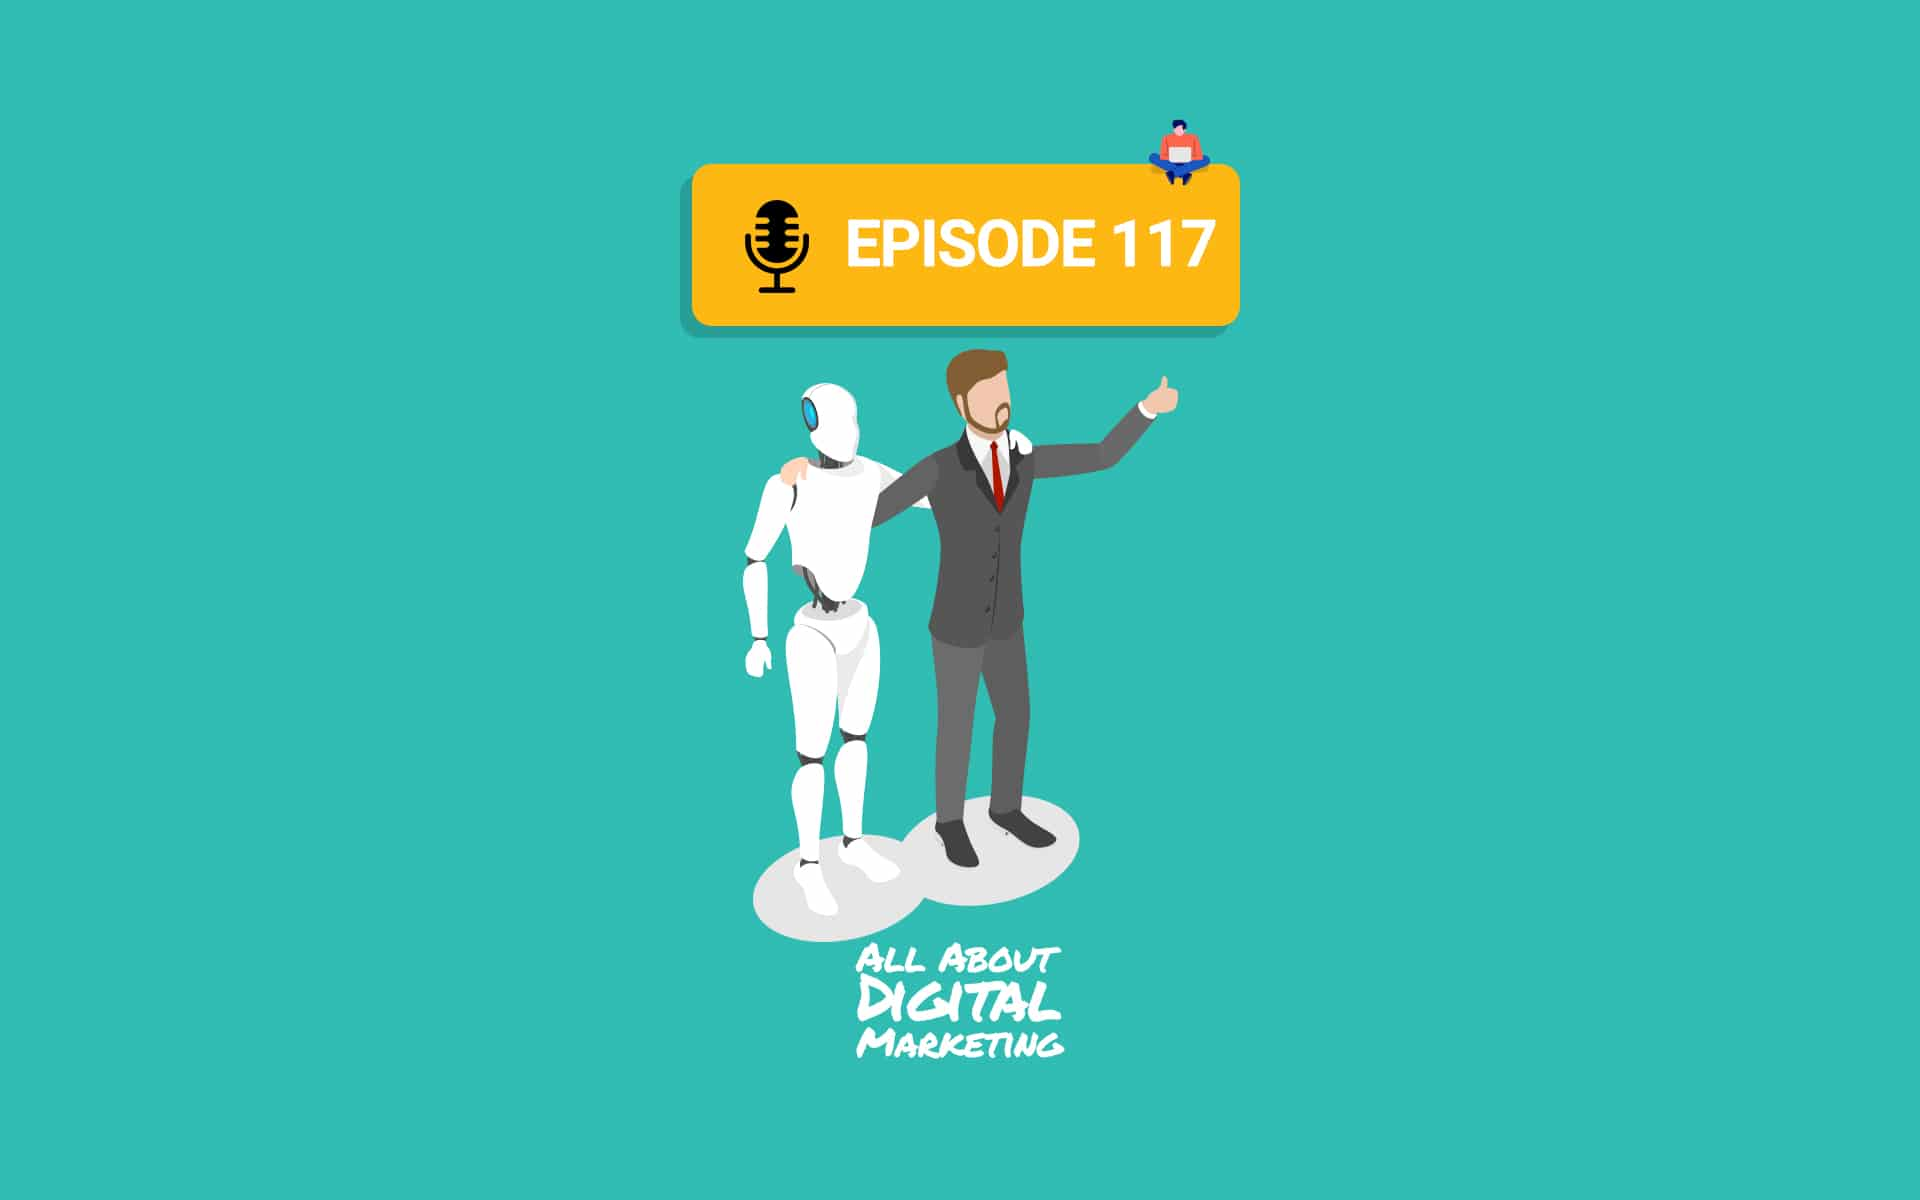 Ep.117 – What Will Digital Marketing Look Like In The Next Few Years?